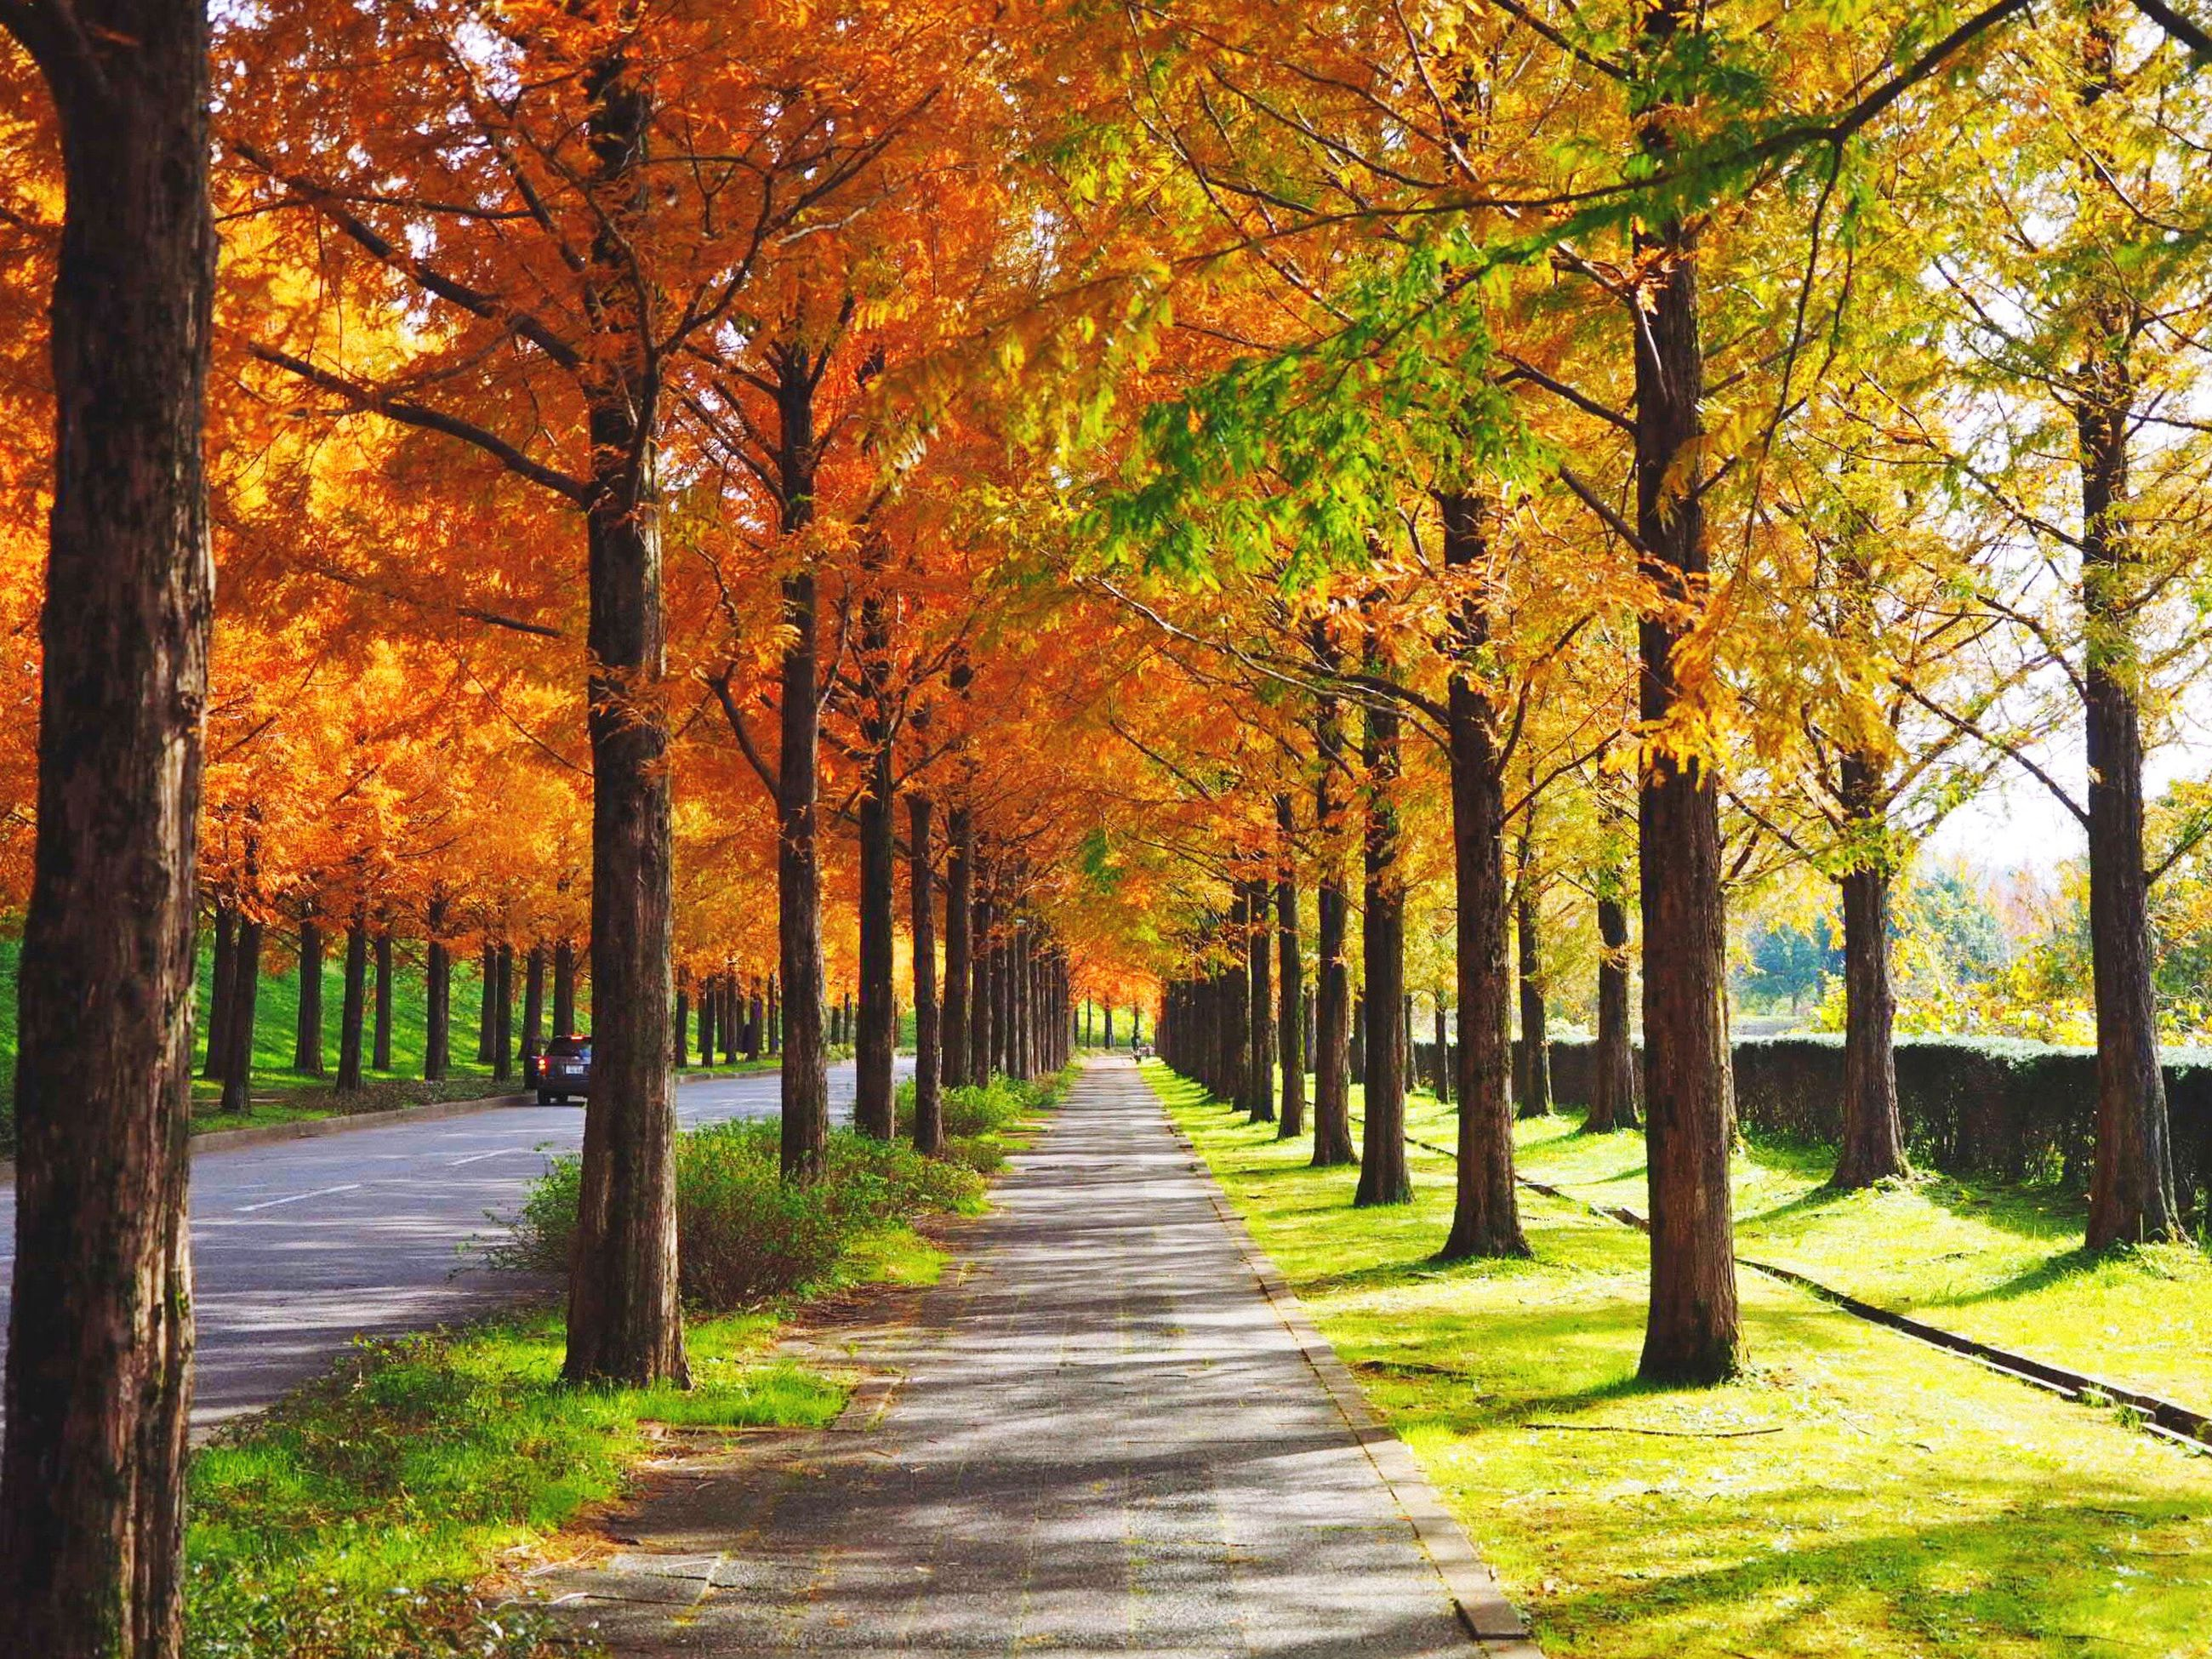 tree, nature, beauty in nature, autumn, tranquil scene, scenics, tranquility, outdoors, leaf, sunlight, growth, no people, day